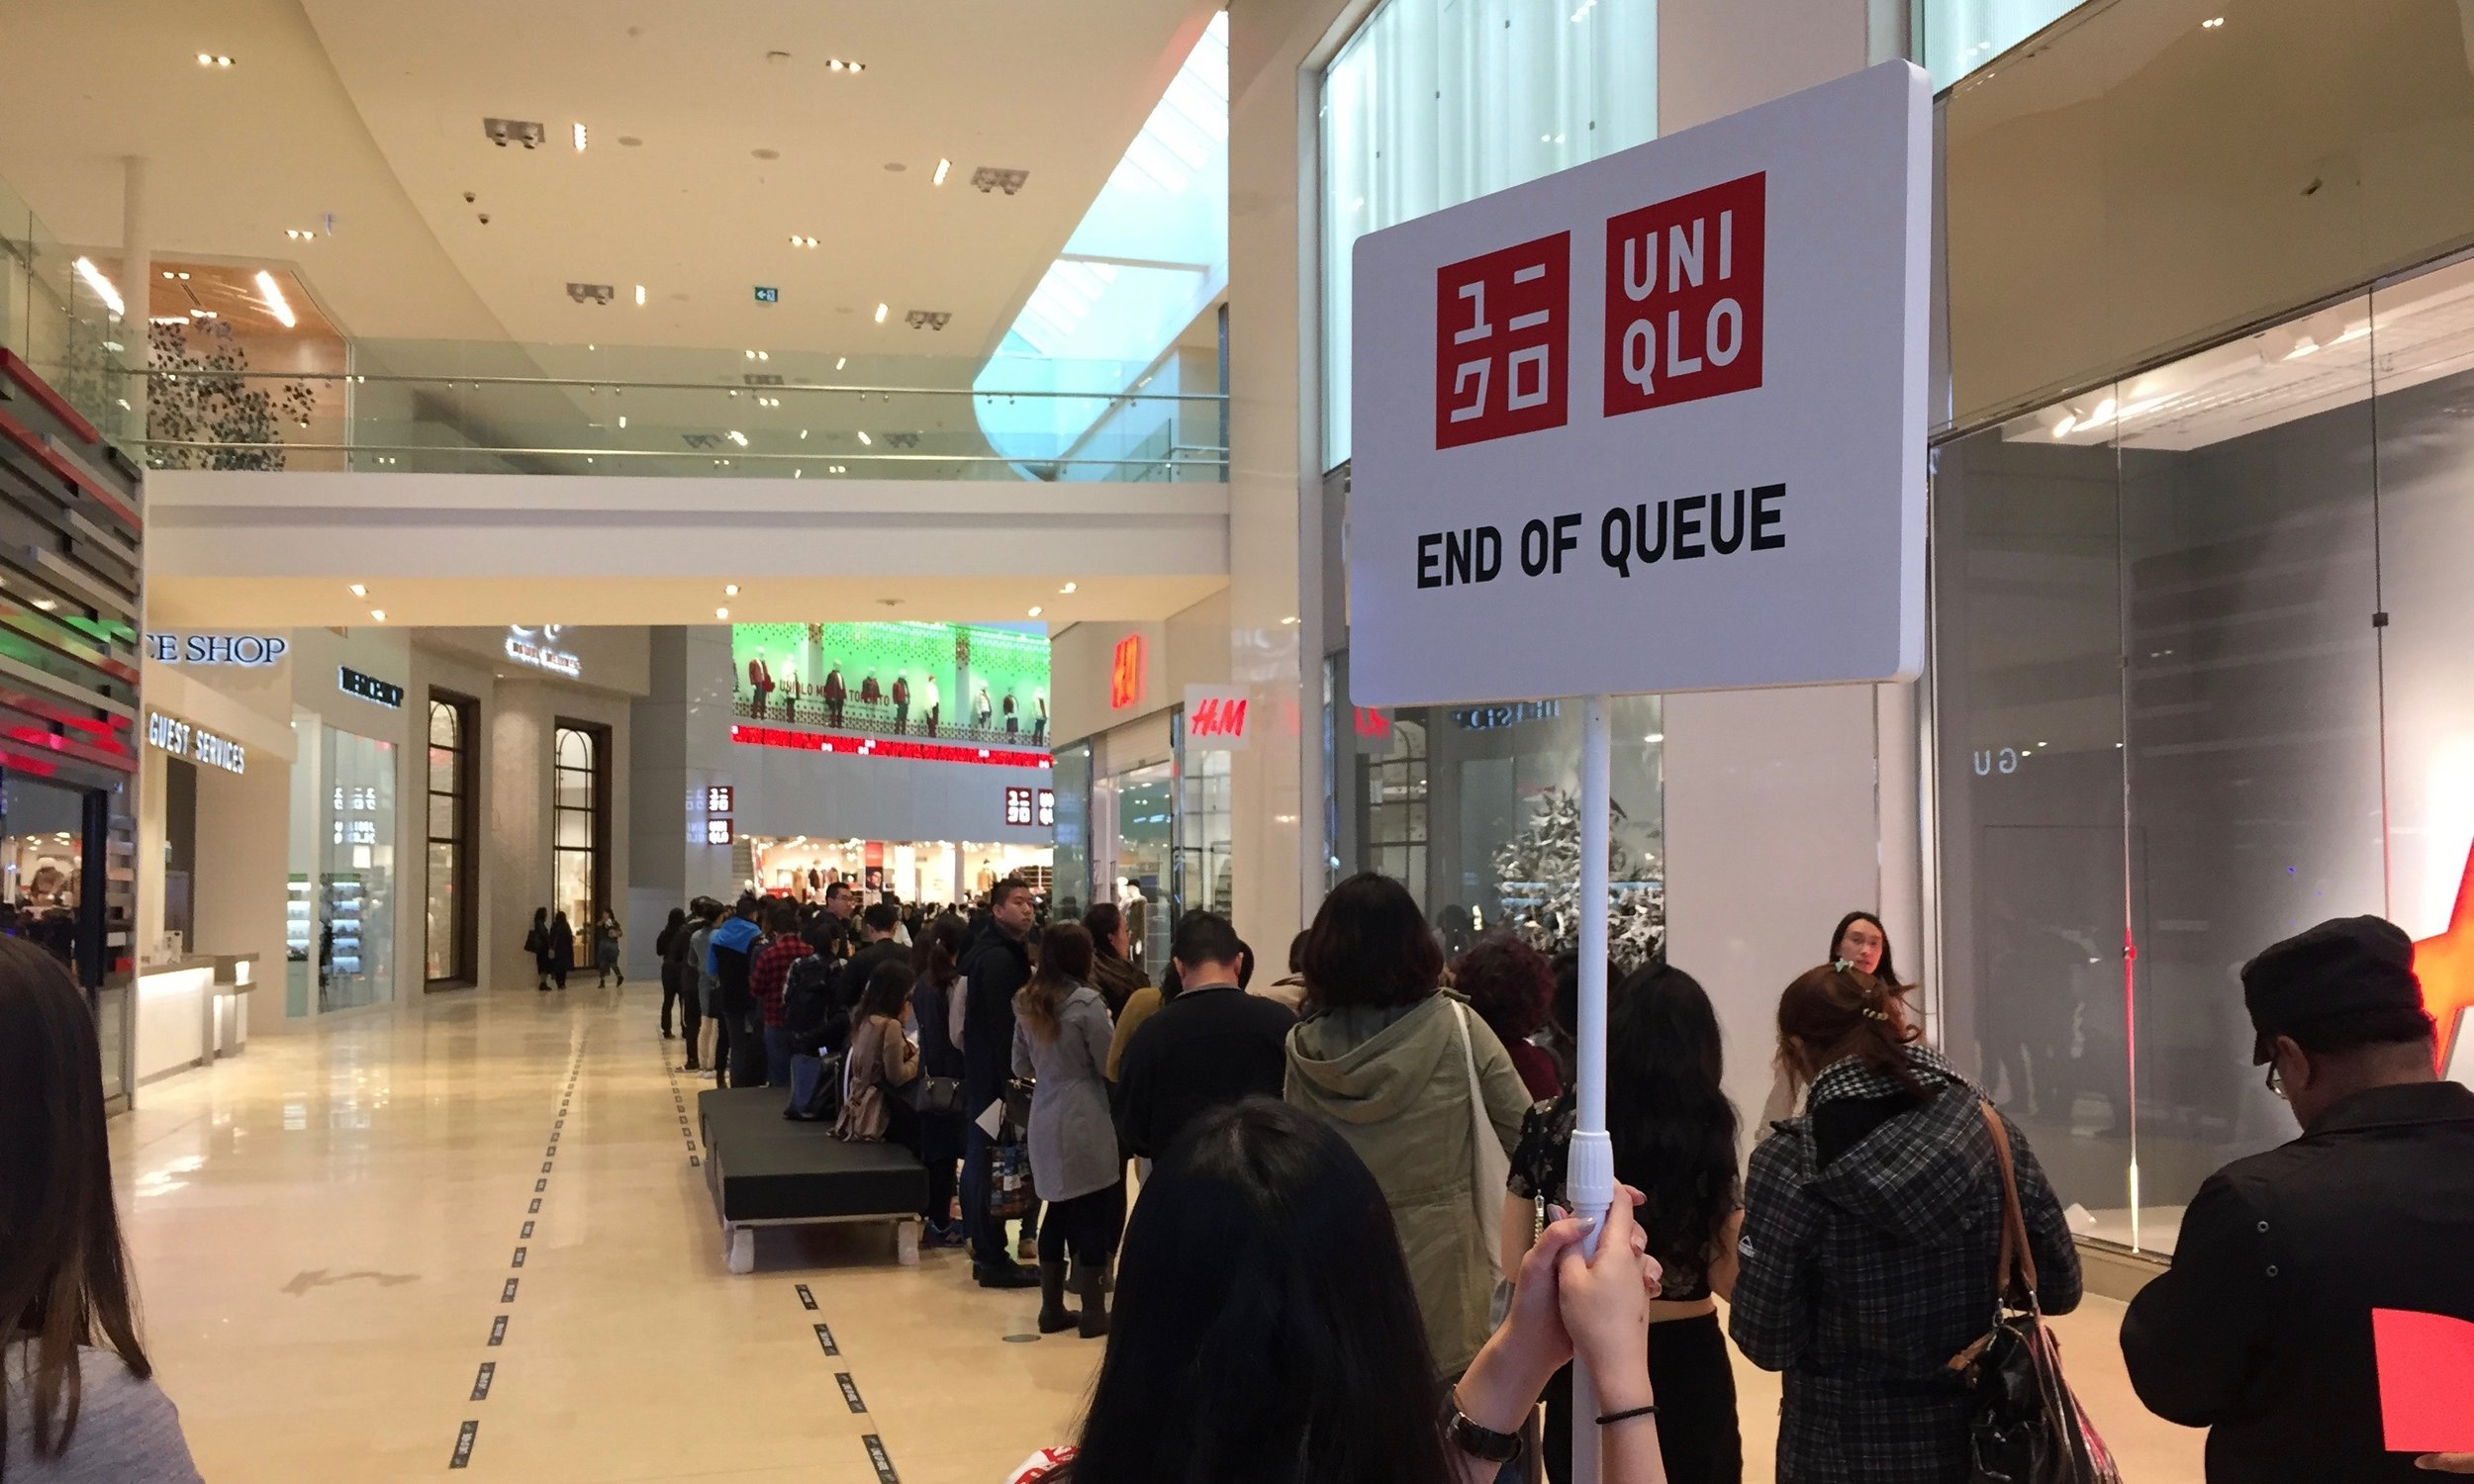 (Uniqlo's opening day lineup extended past H&M)